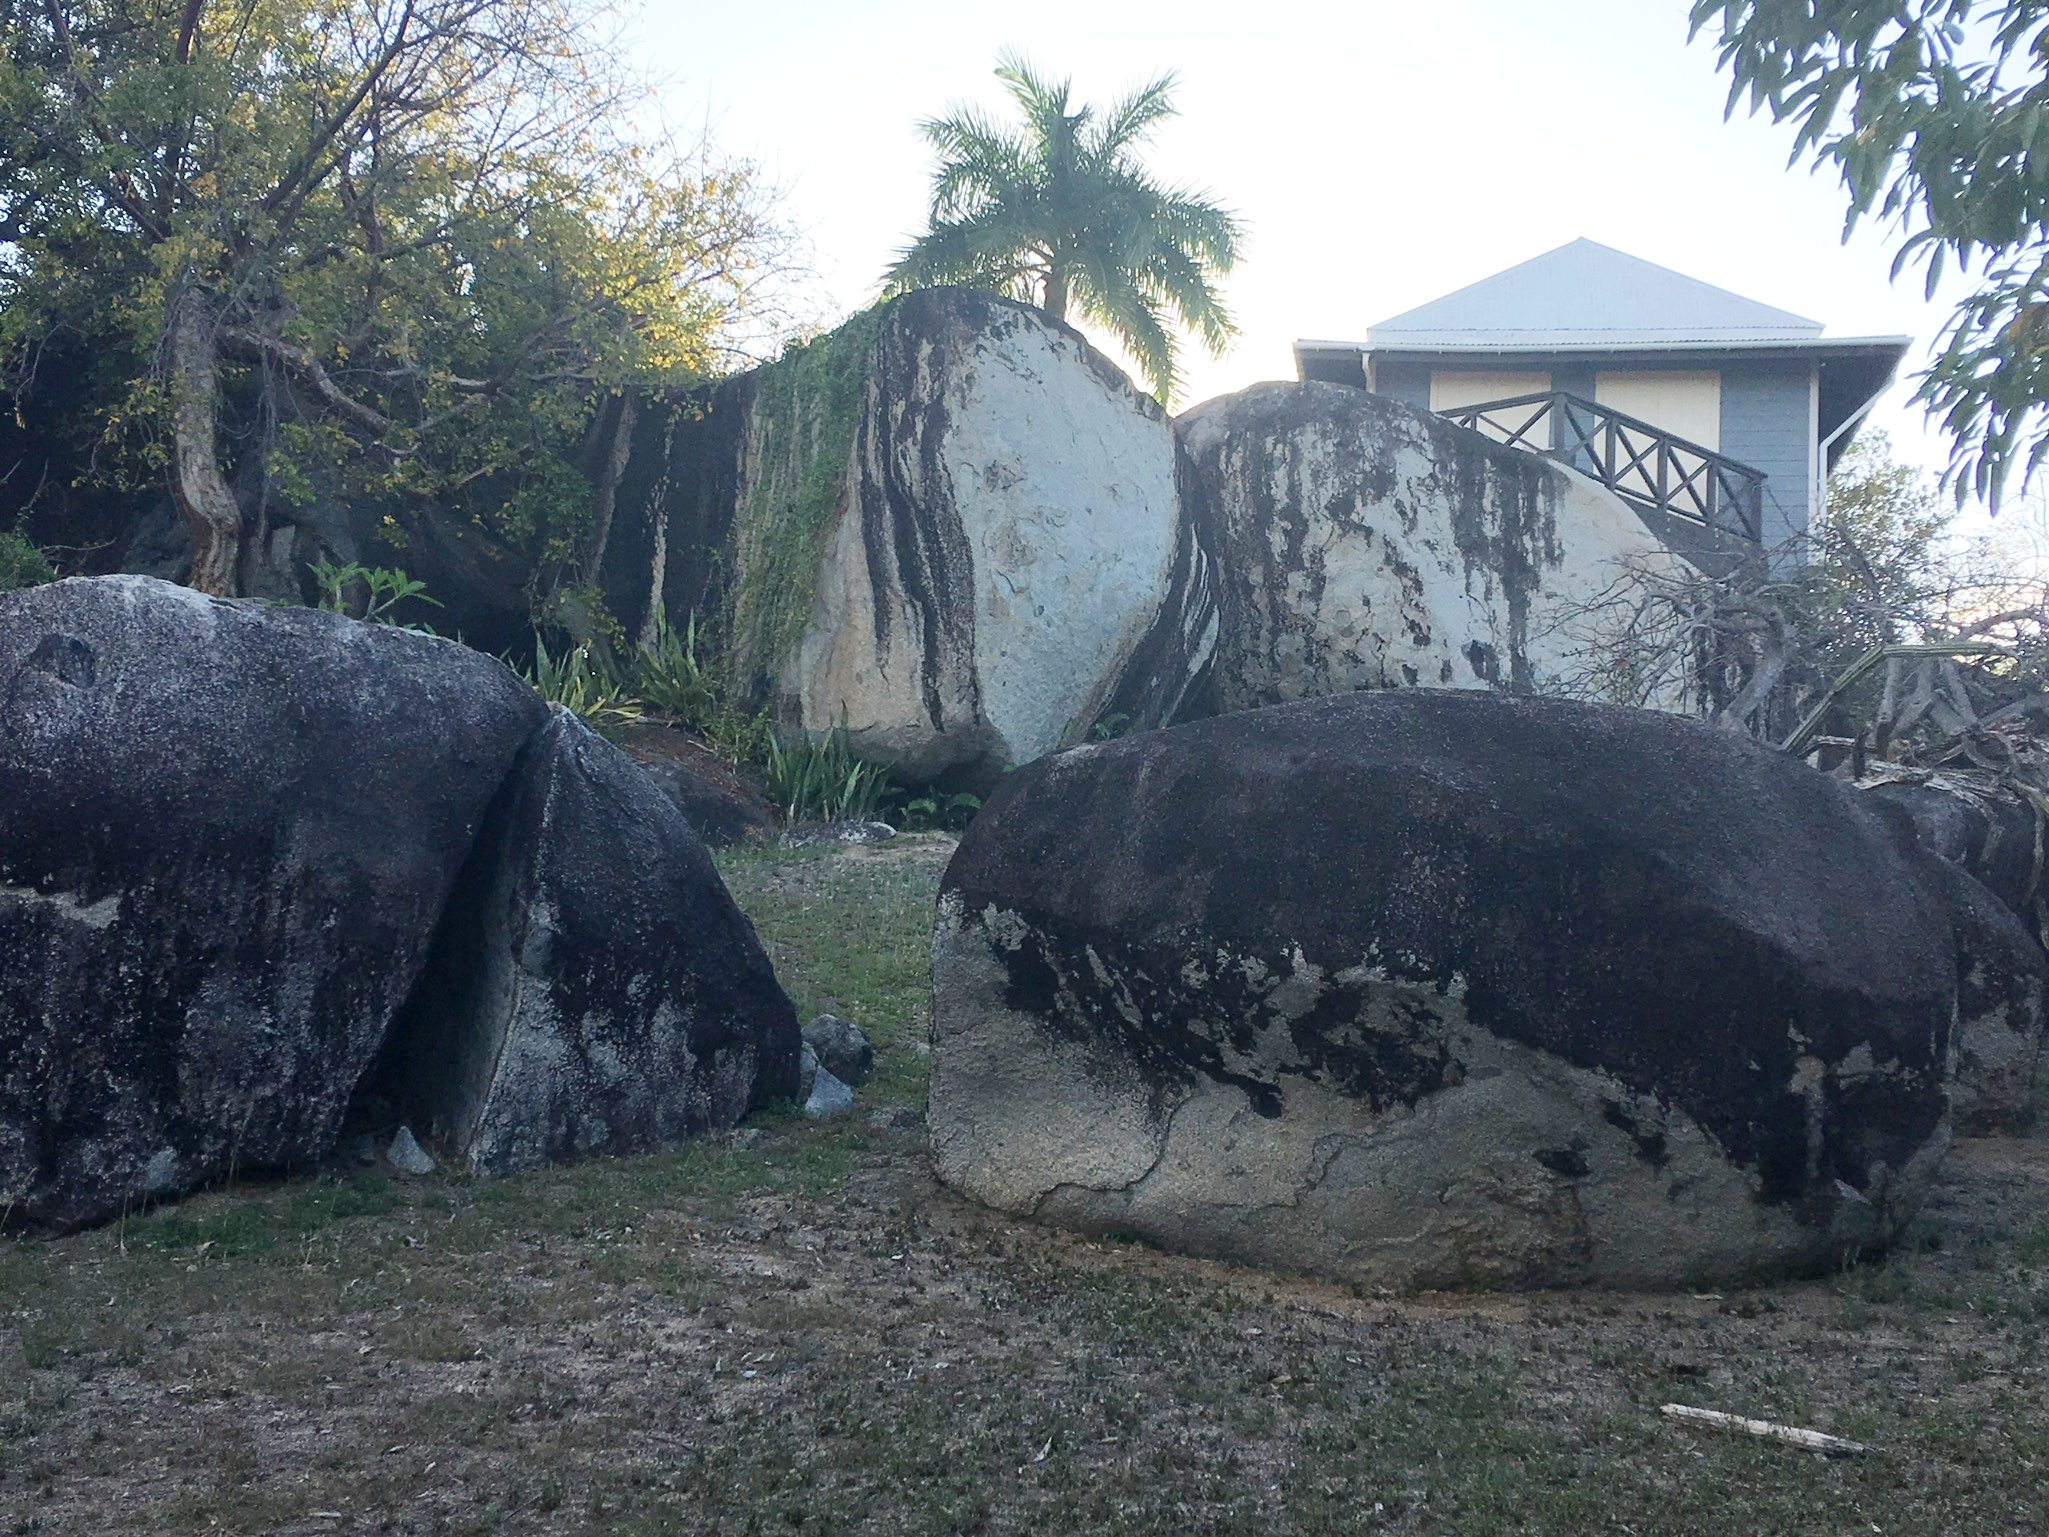 Boulders on the property